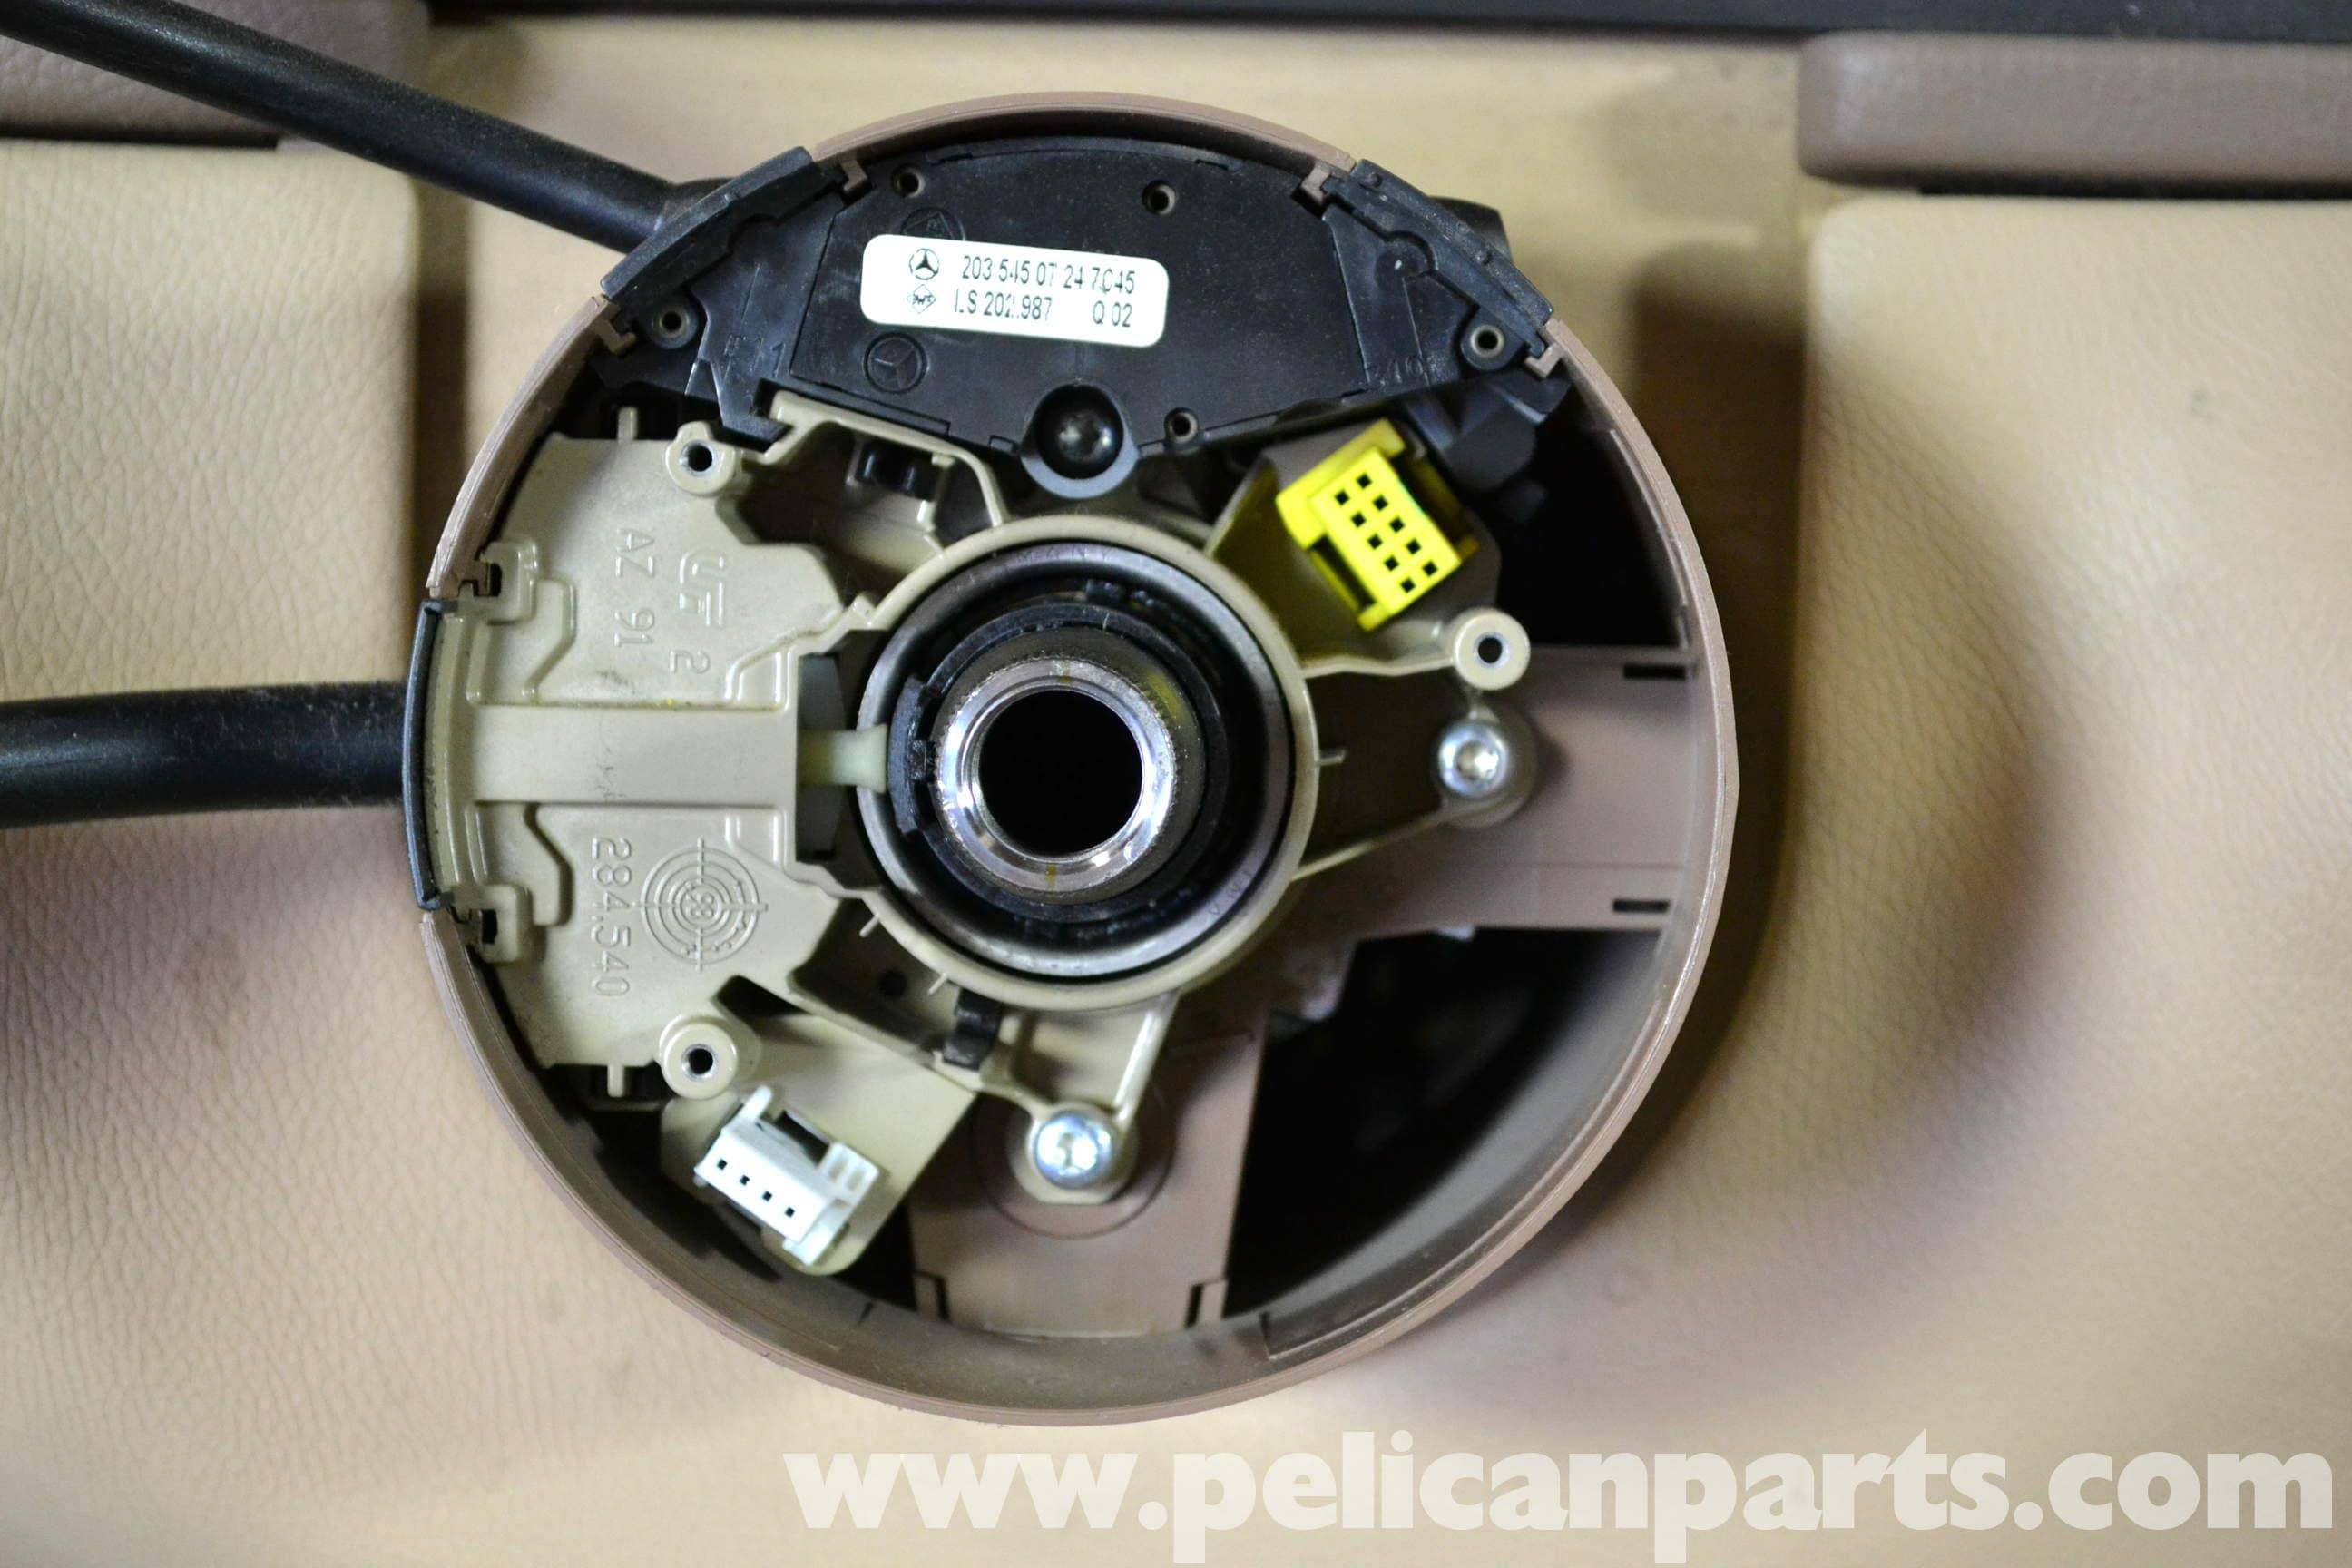 Mercedes benz w203 steering wheel removal 2001 2007 for Mercedes benz c230 battery replacement